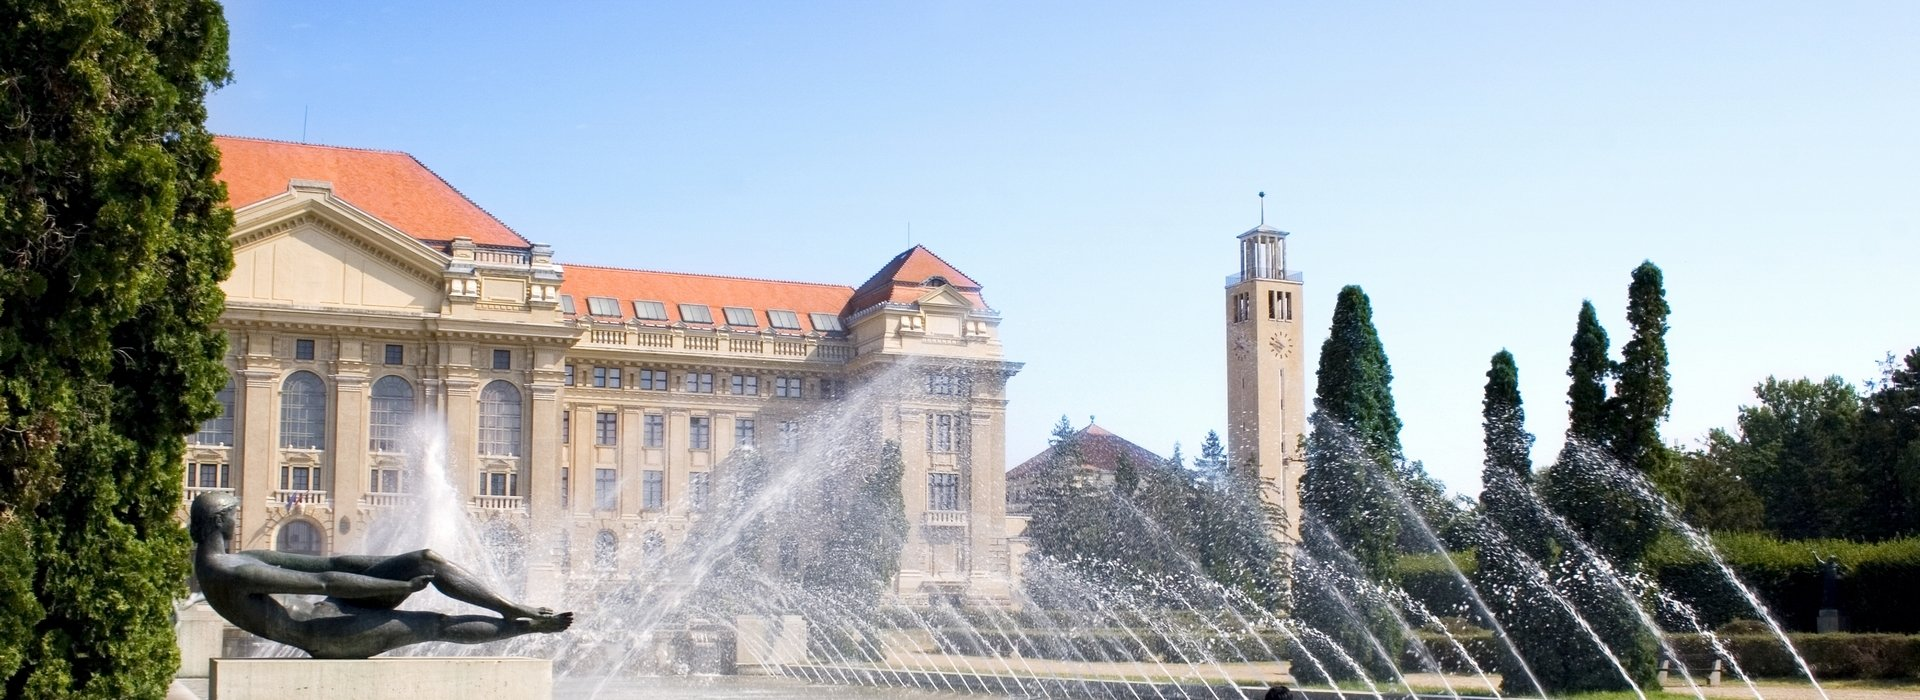 Things to do in Debrecen